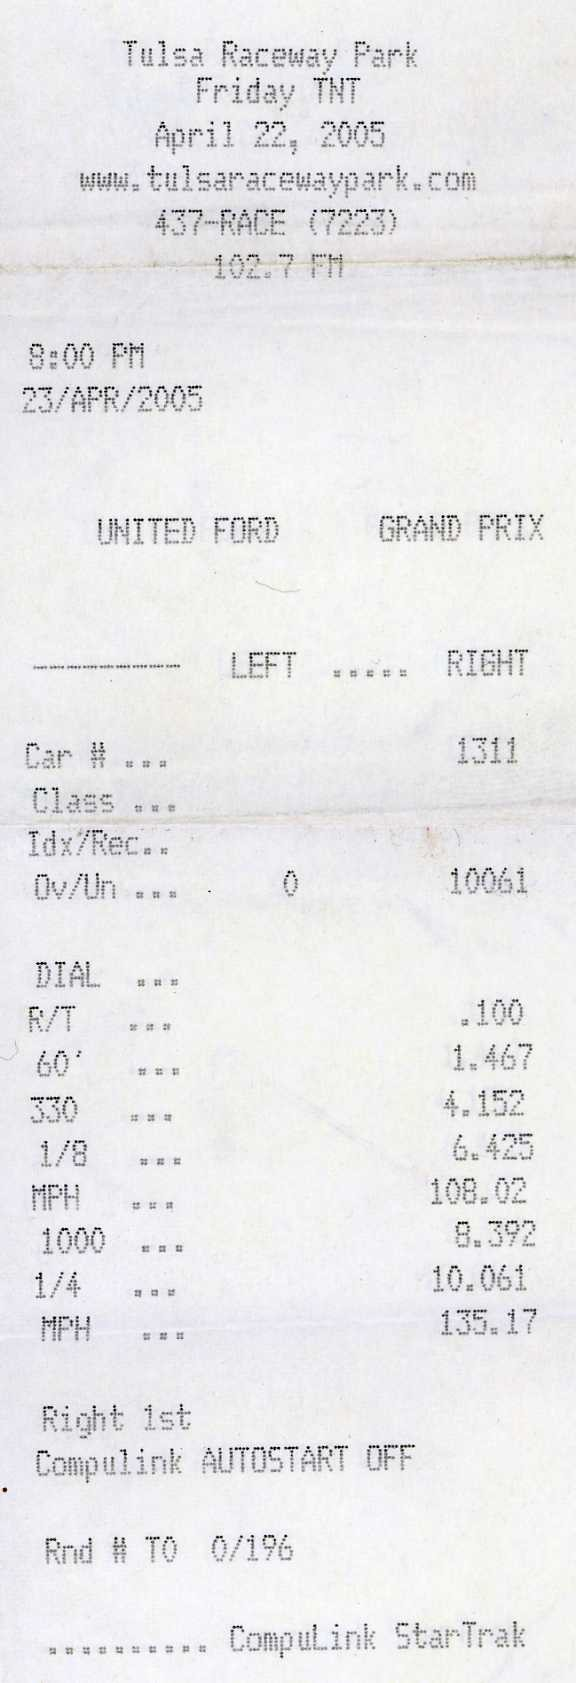 1964 Plymouth Belvedere 426 Max Wedge Timeslip Scan